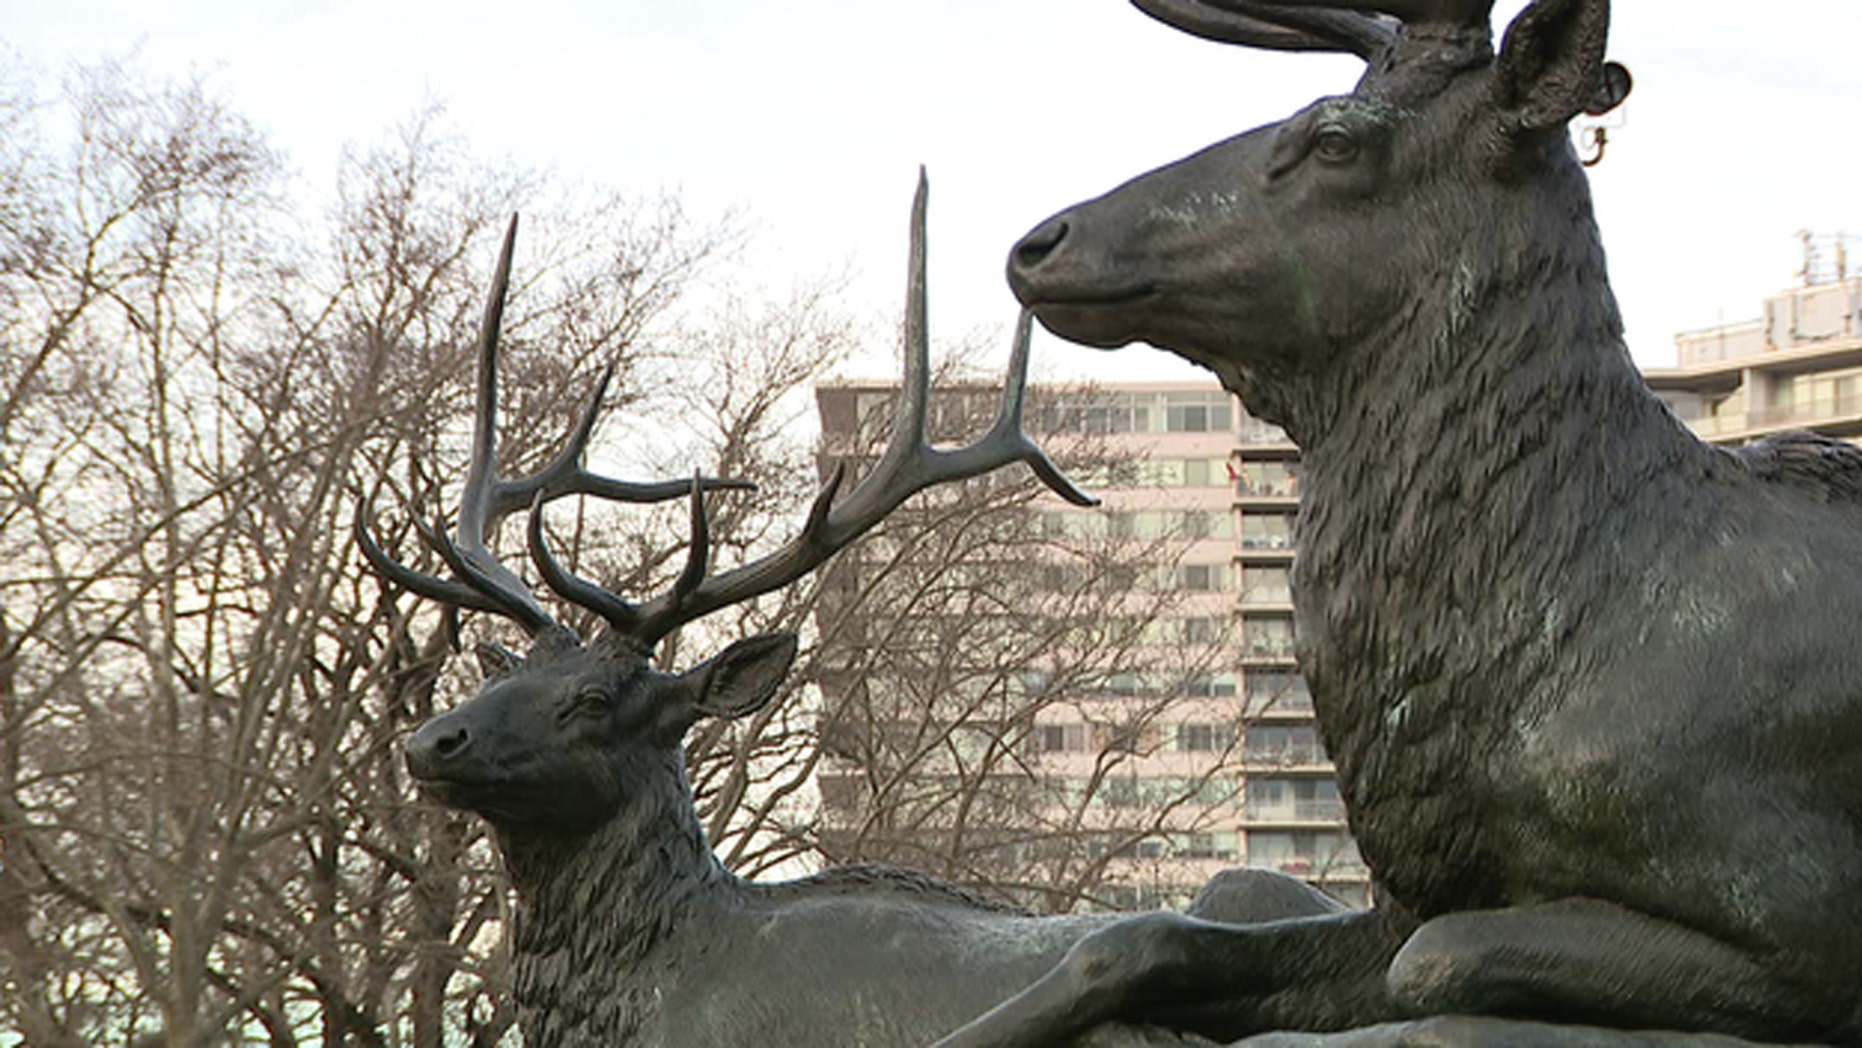 A man ended up impaled on a statue of a deer in Philadelphia on New Year's Day, according to officials.